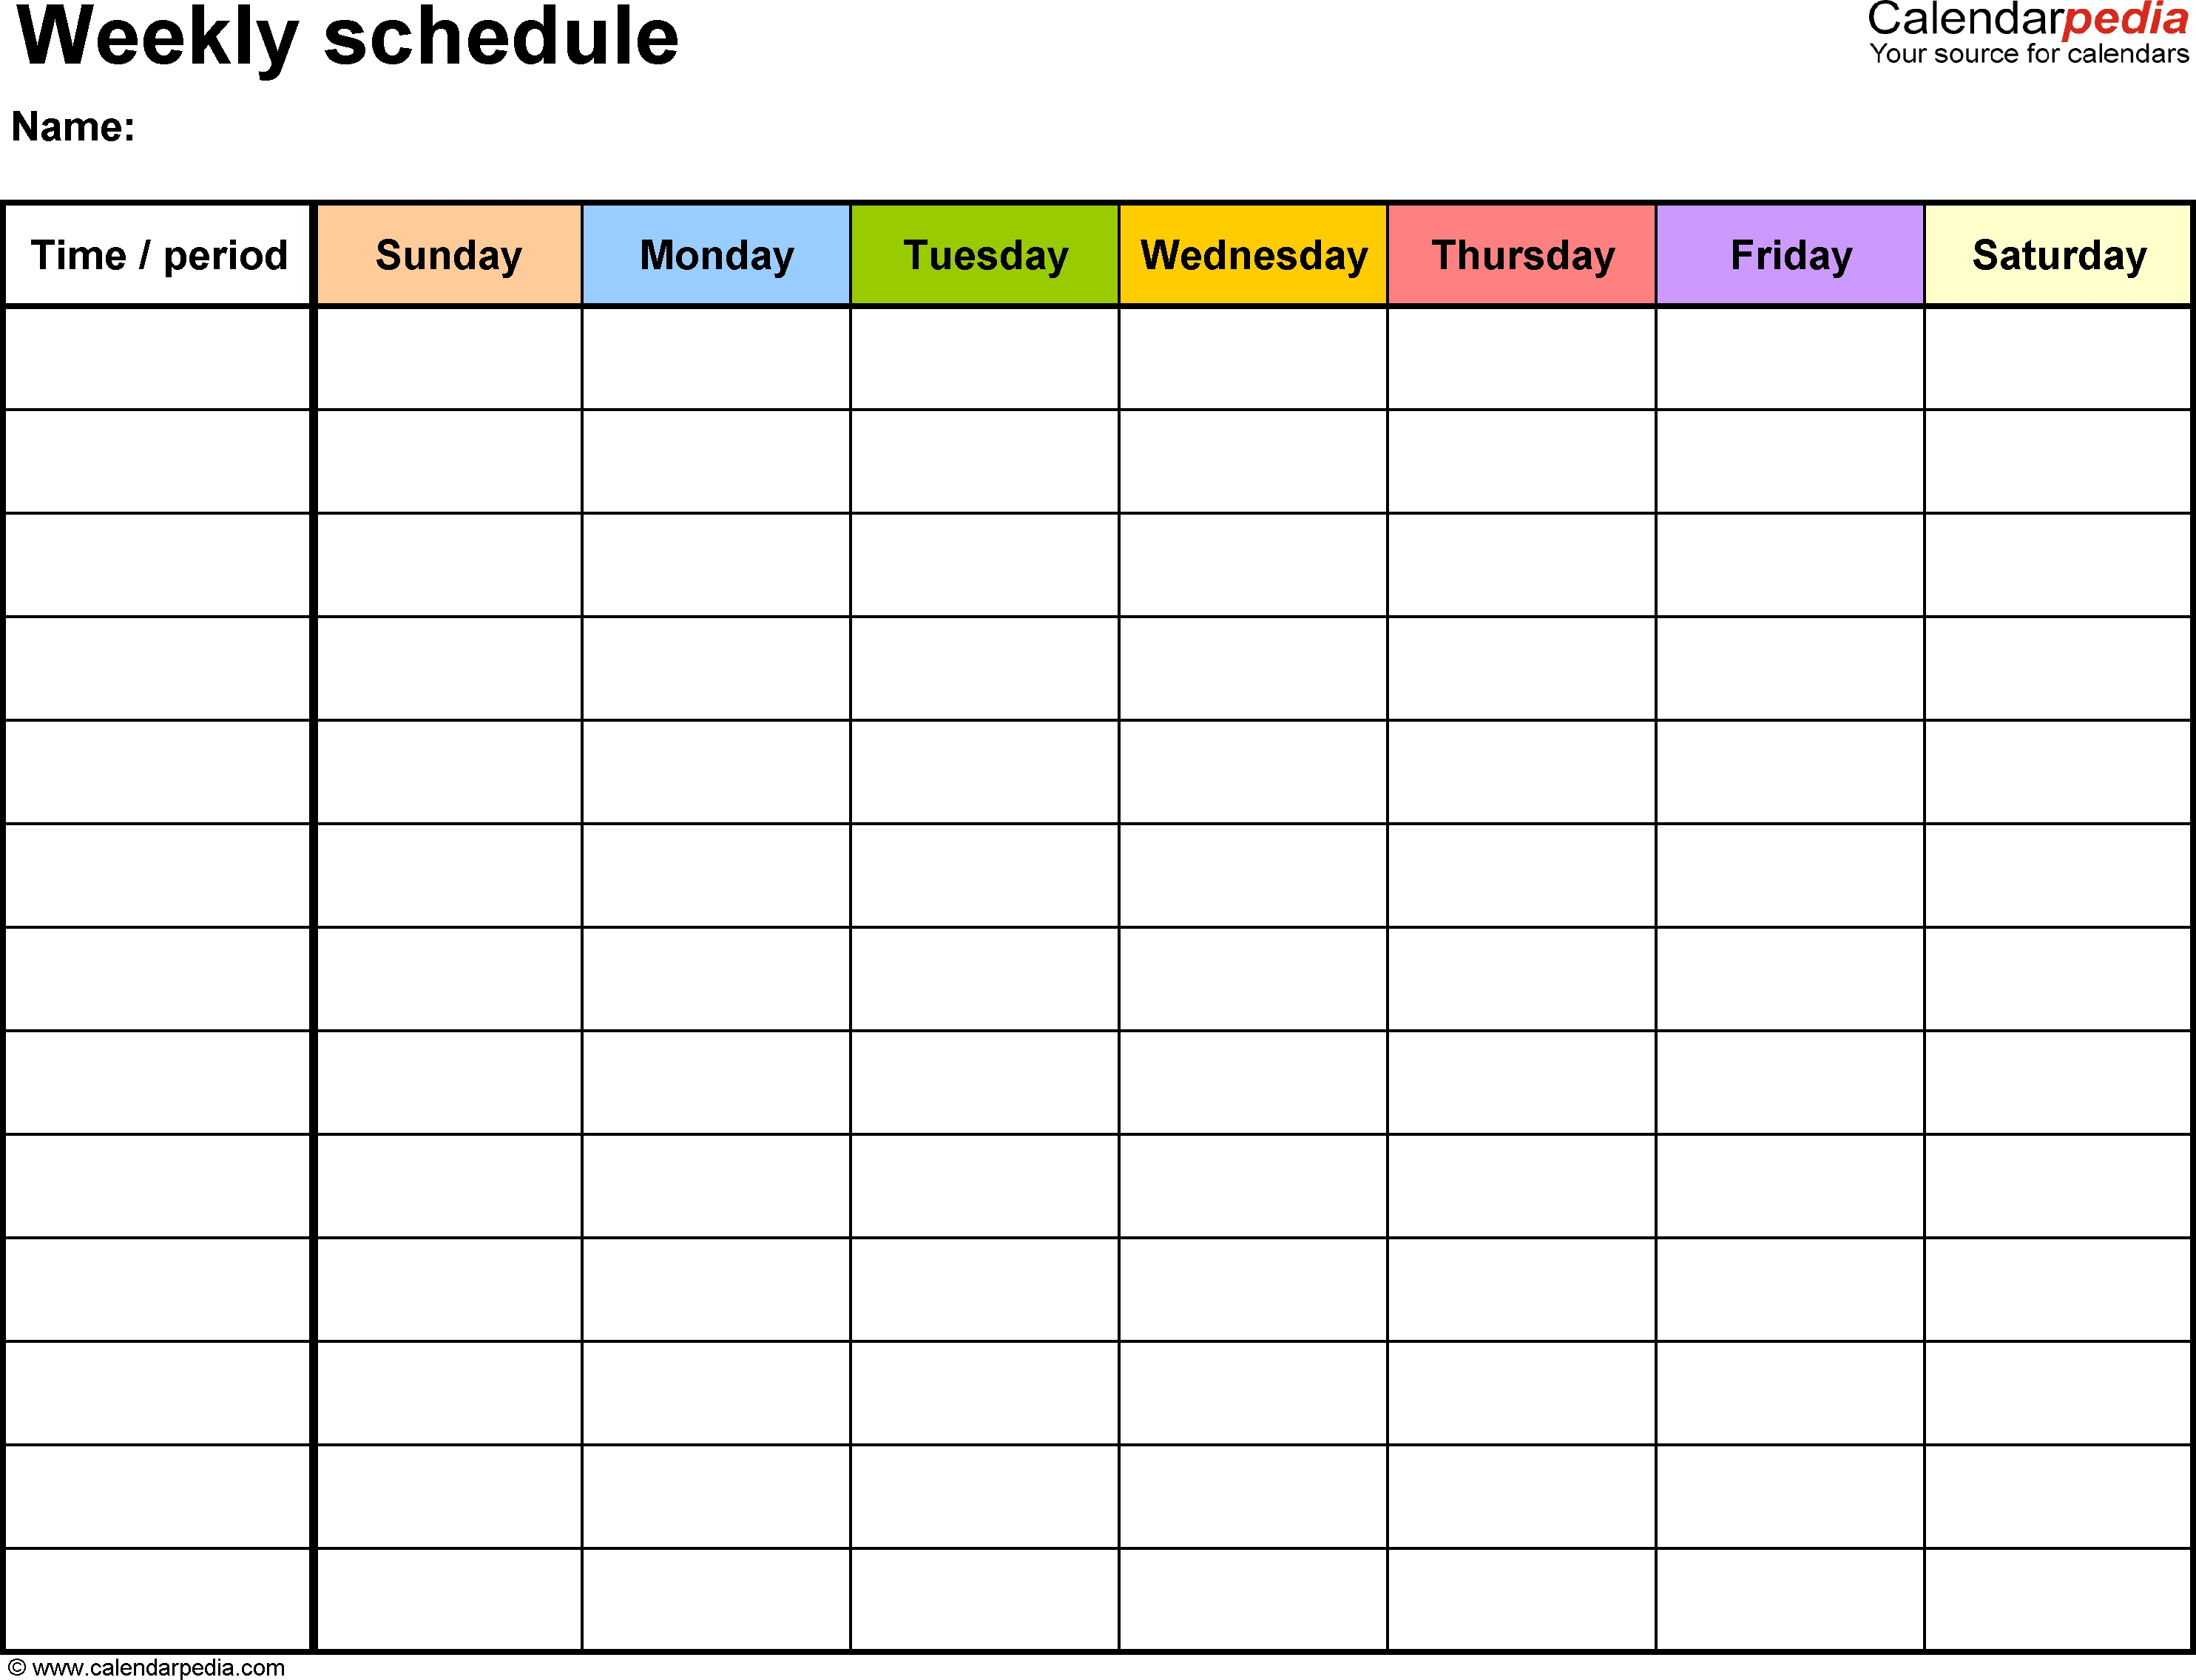 Weekly Schedule Template For Word Version 13: Landscape, 1 Page throughout Printable Sunday Thru Saturday To Do List Calendar